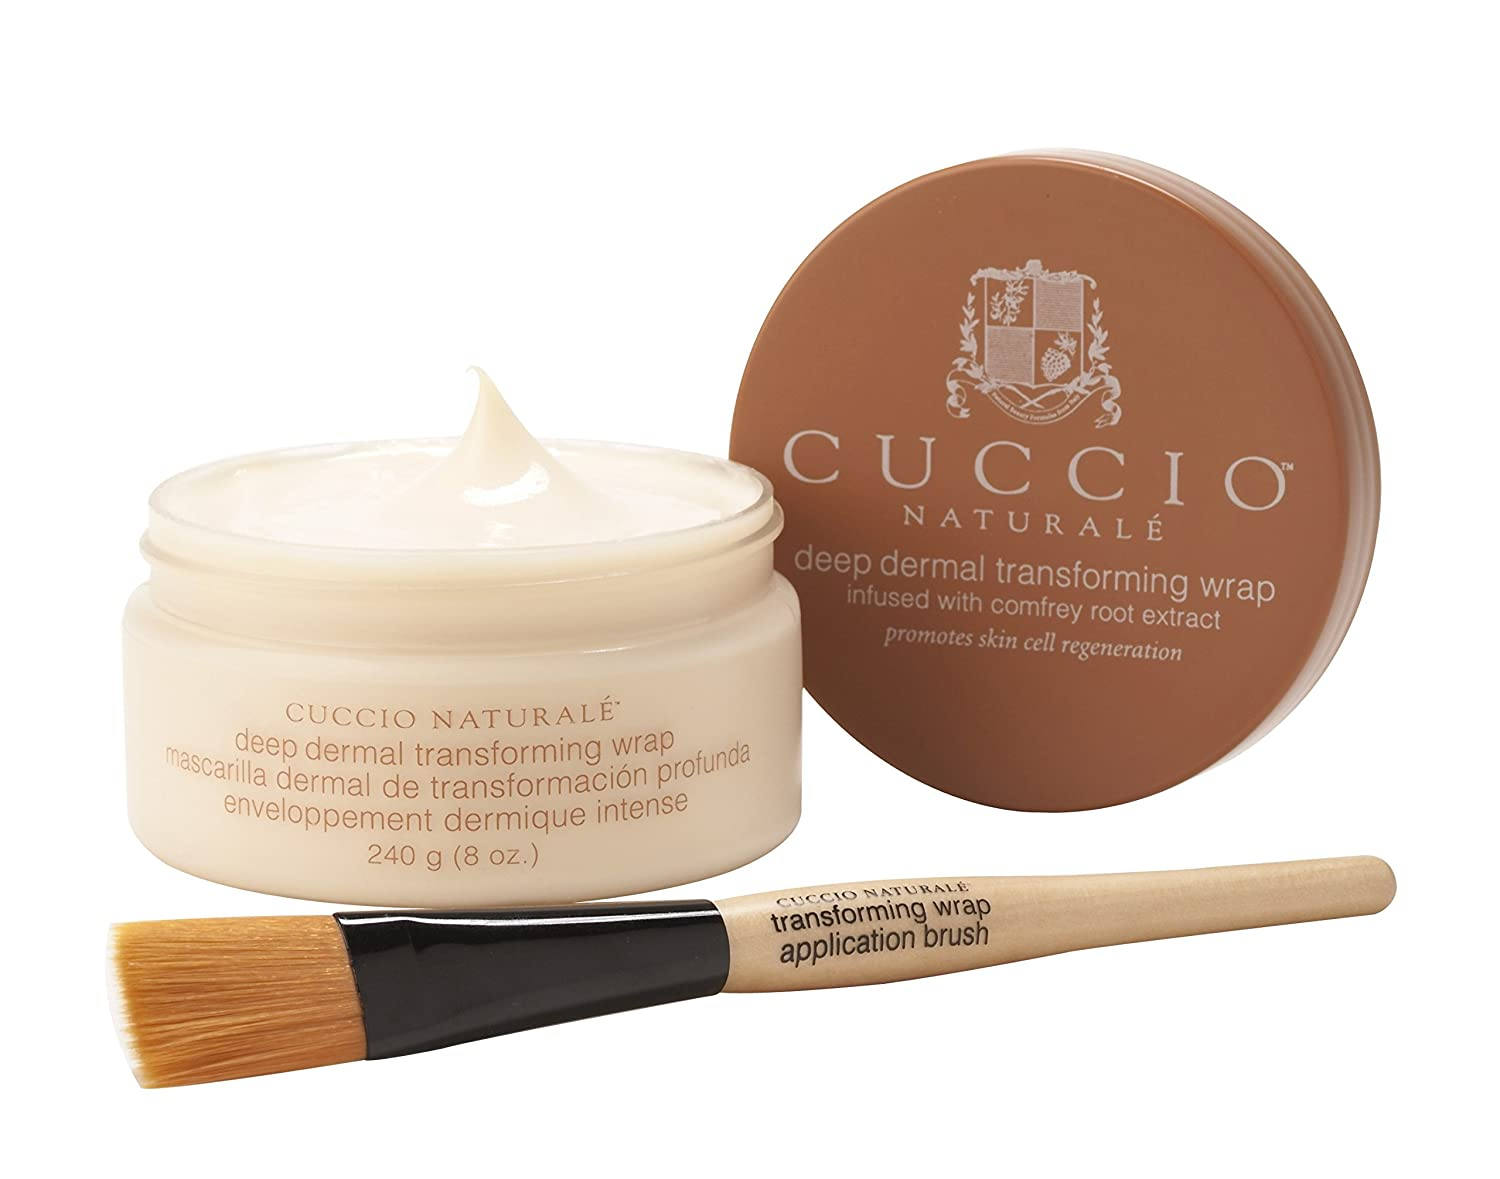 Cuccio Naturale Deep Dermal Transforming Wrap with Application Brush 240g 3117/B